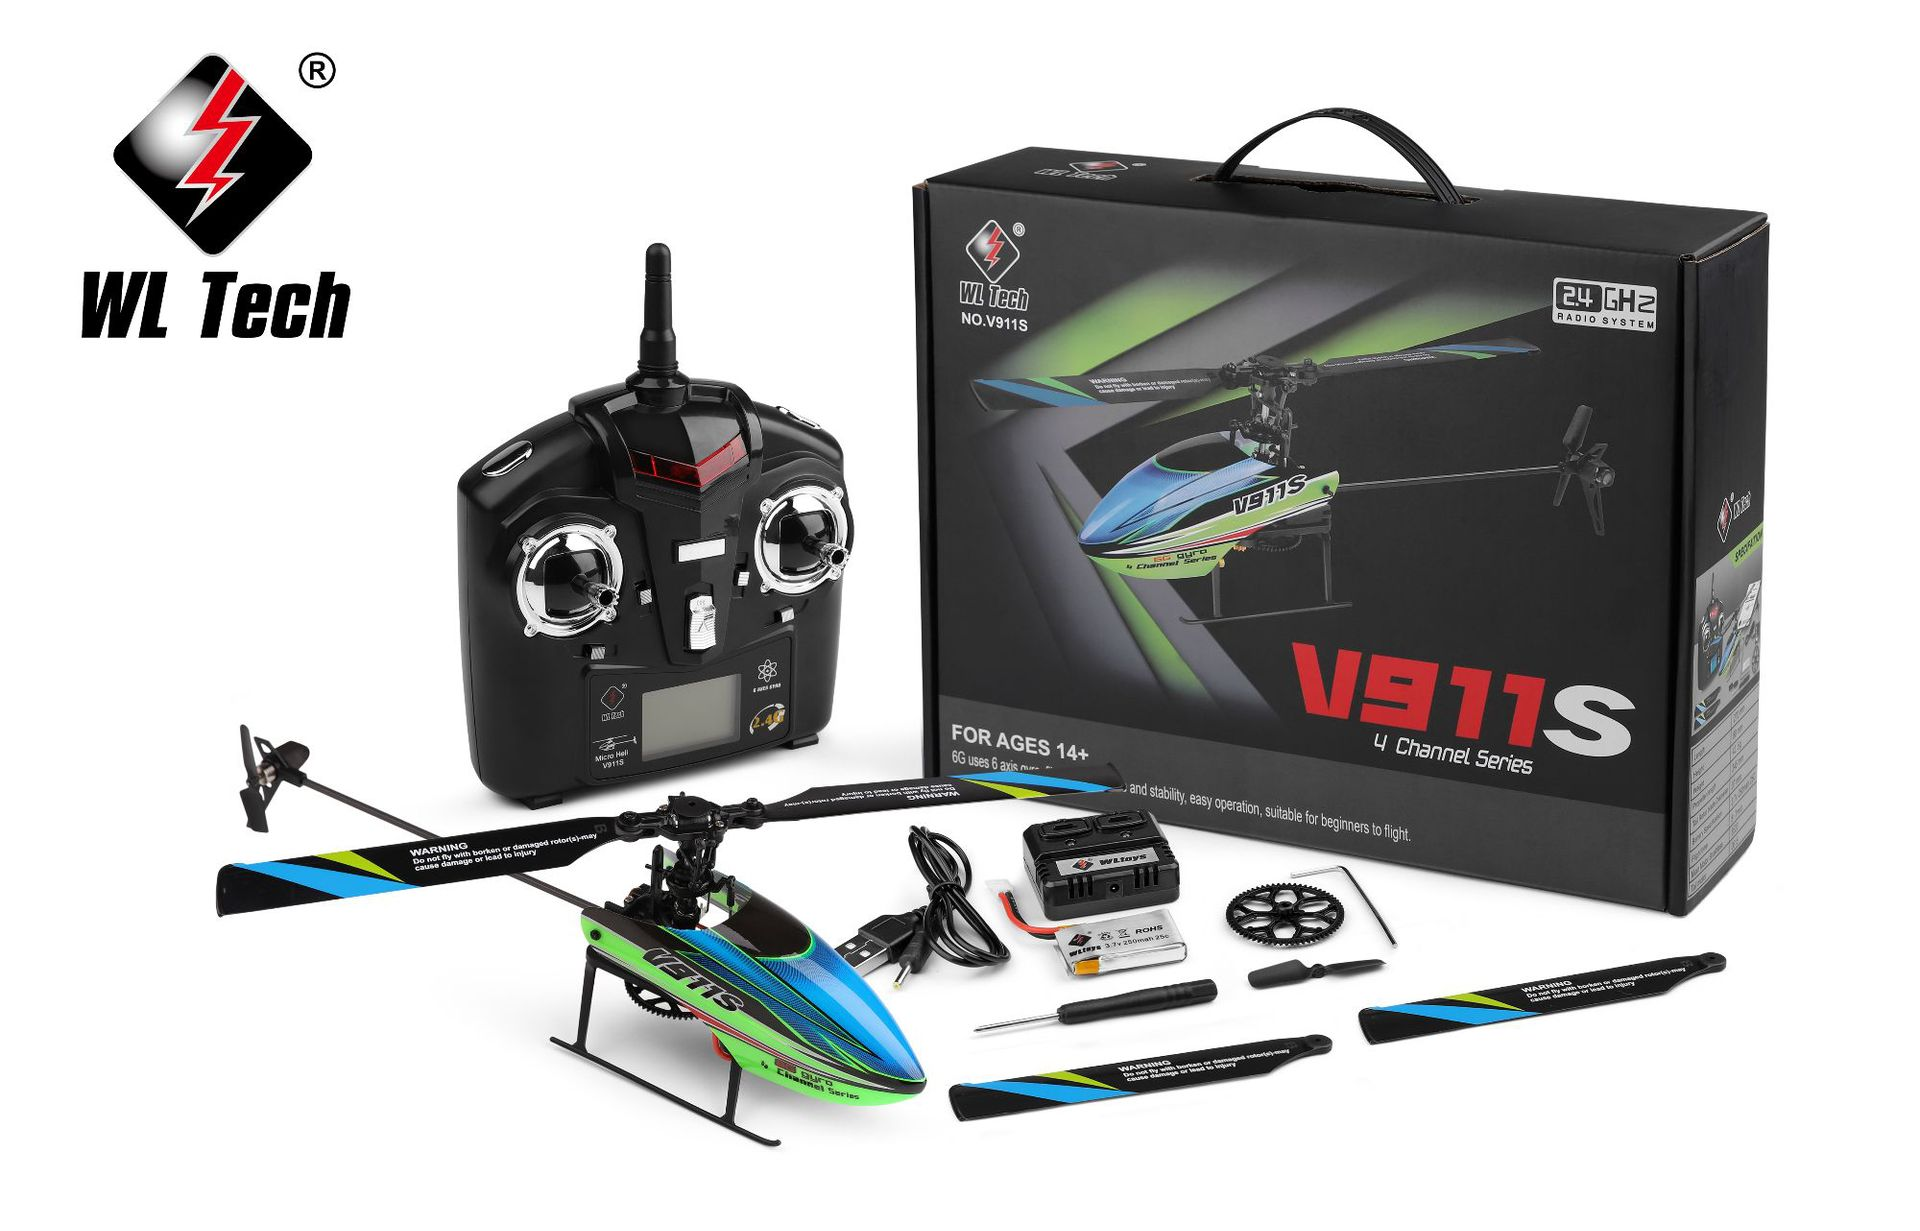 Weili V911s Four-Channel Stand-up Aircraft 2.4g LCD Display Remote Control Helicopter Toy Gift